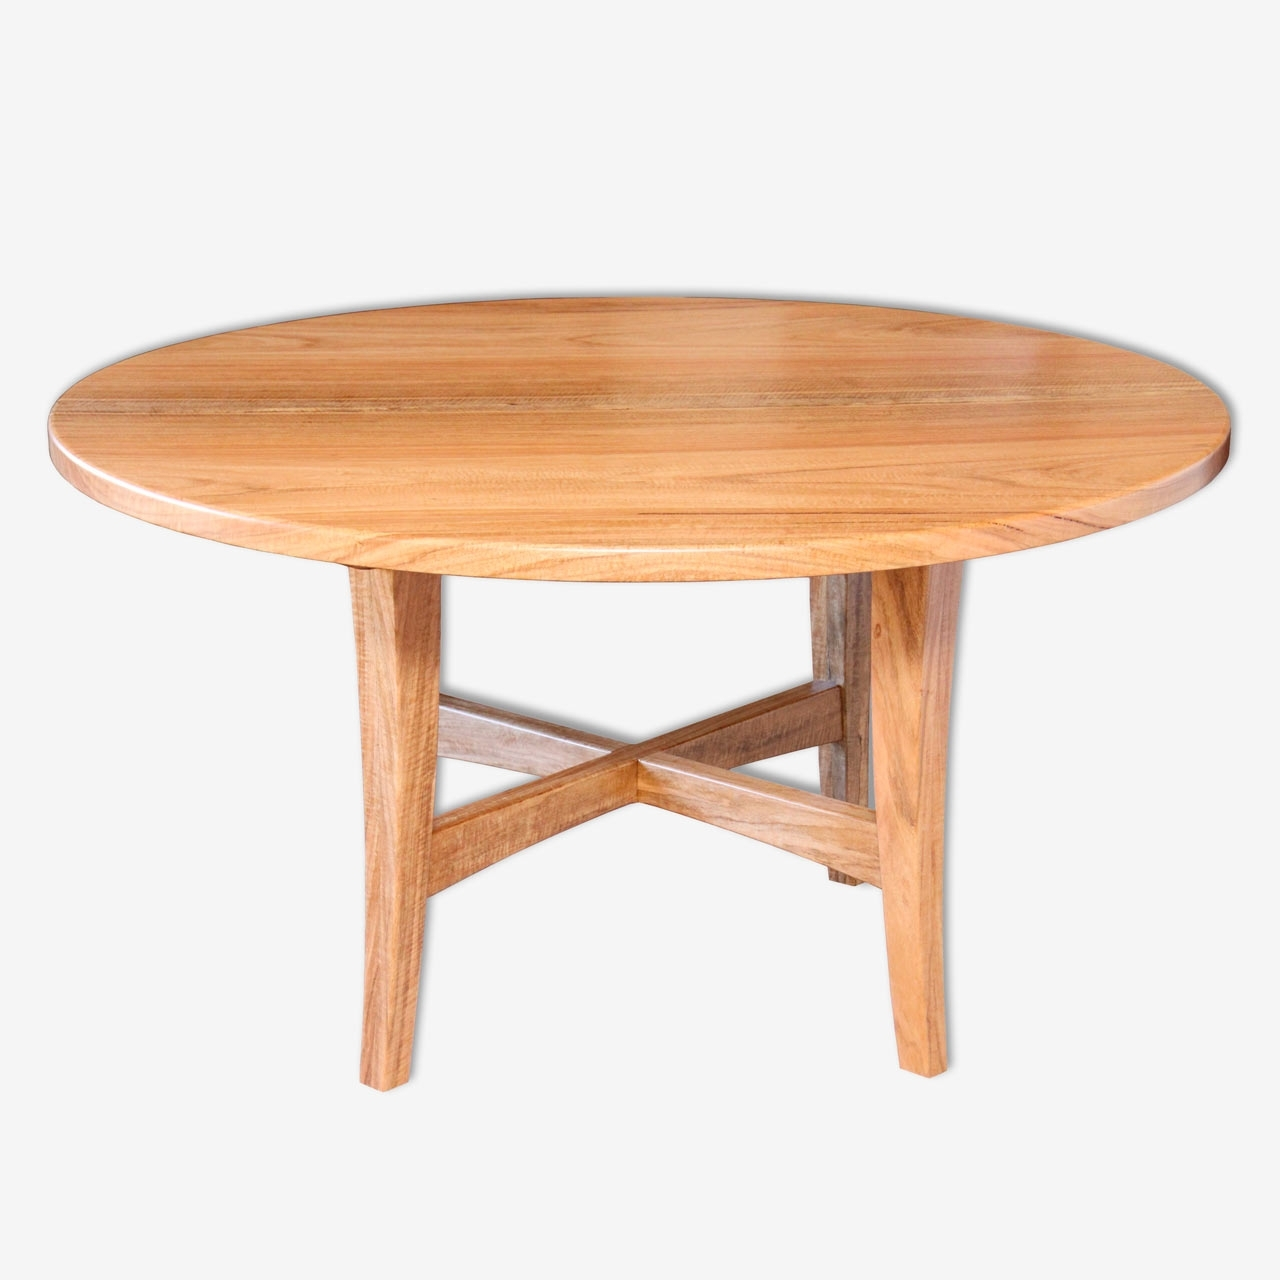 Treeton Fine For Perth Dining Tables (View 7 of 25)